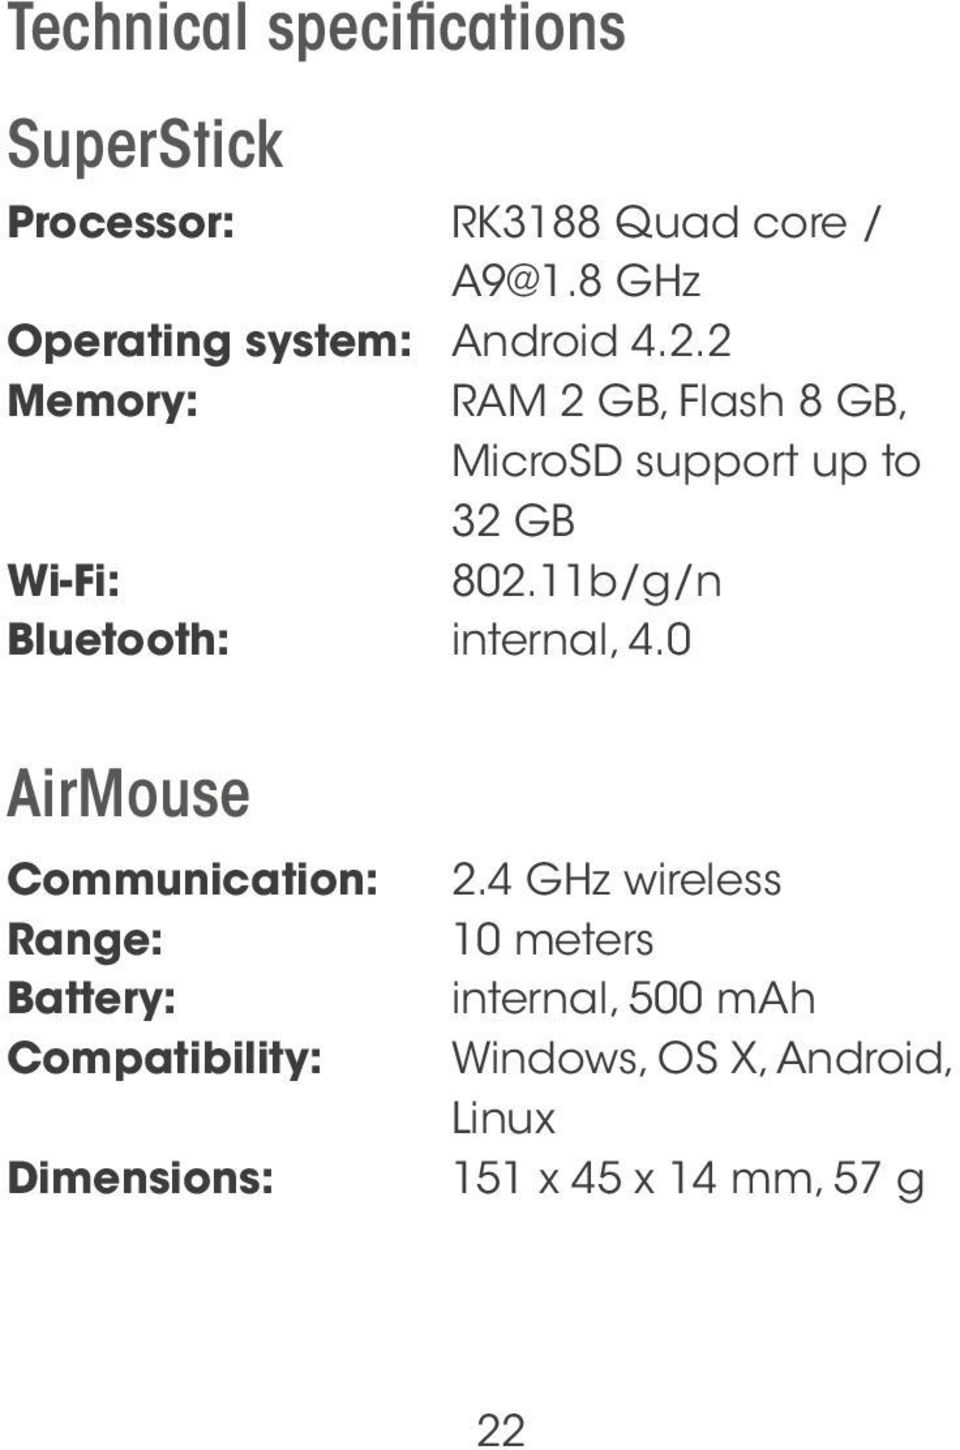 8 GHz Android 4.2.2 RAM 2 GB, Flash 8 GB, MicroSD support up to 32 GB 802.11b/g/n internal, 4.